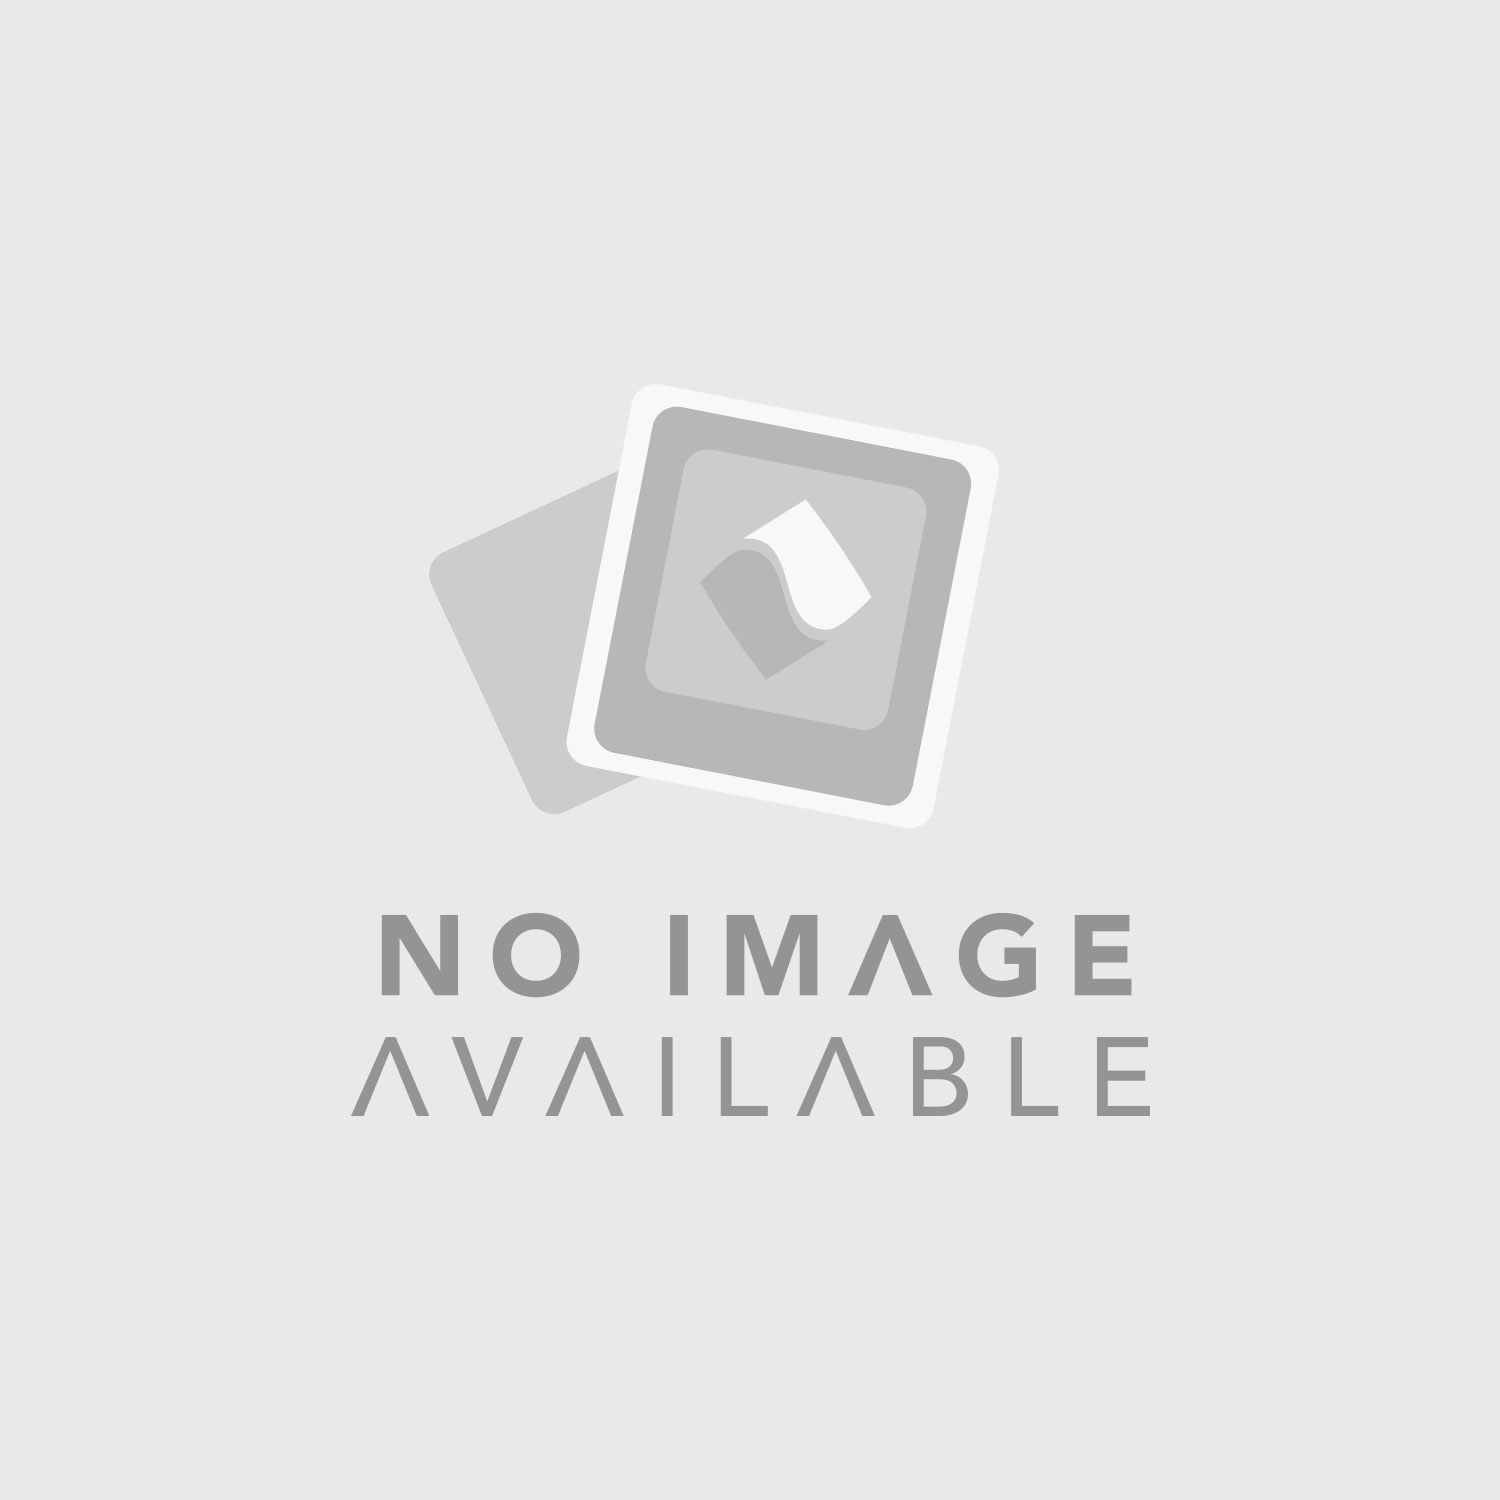 Swisson ISP-6R-DC-RJ45B DIN Rail Mountable, DMX & RDM Splitter, 6 Outputs, RJ45, Alternative Pinout